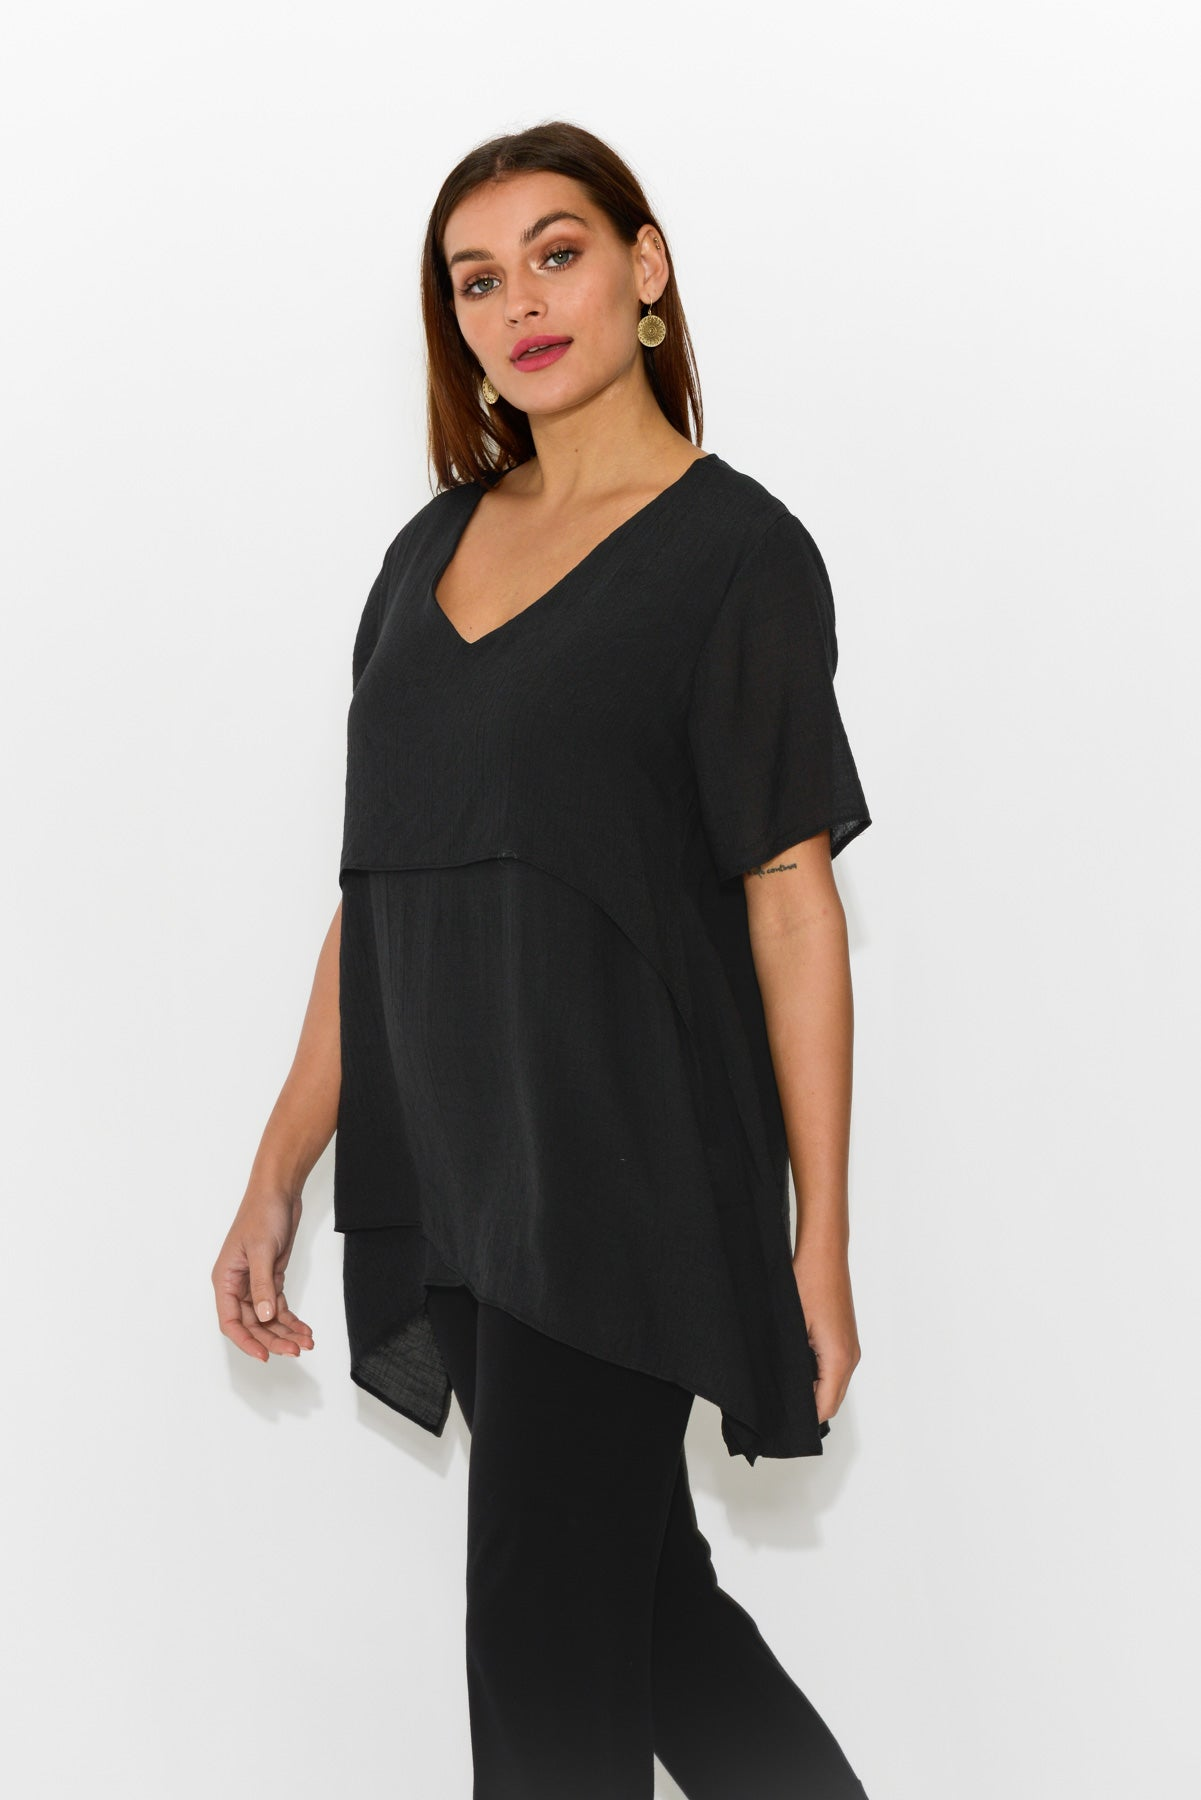 Black Layered Tunic Top - Blue Bungalow